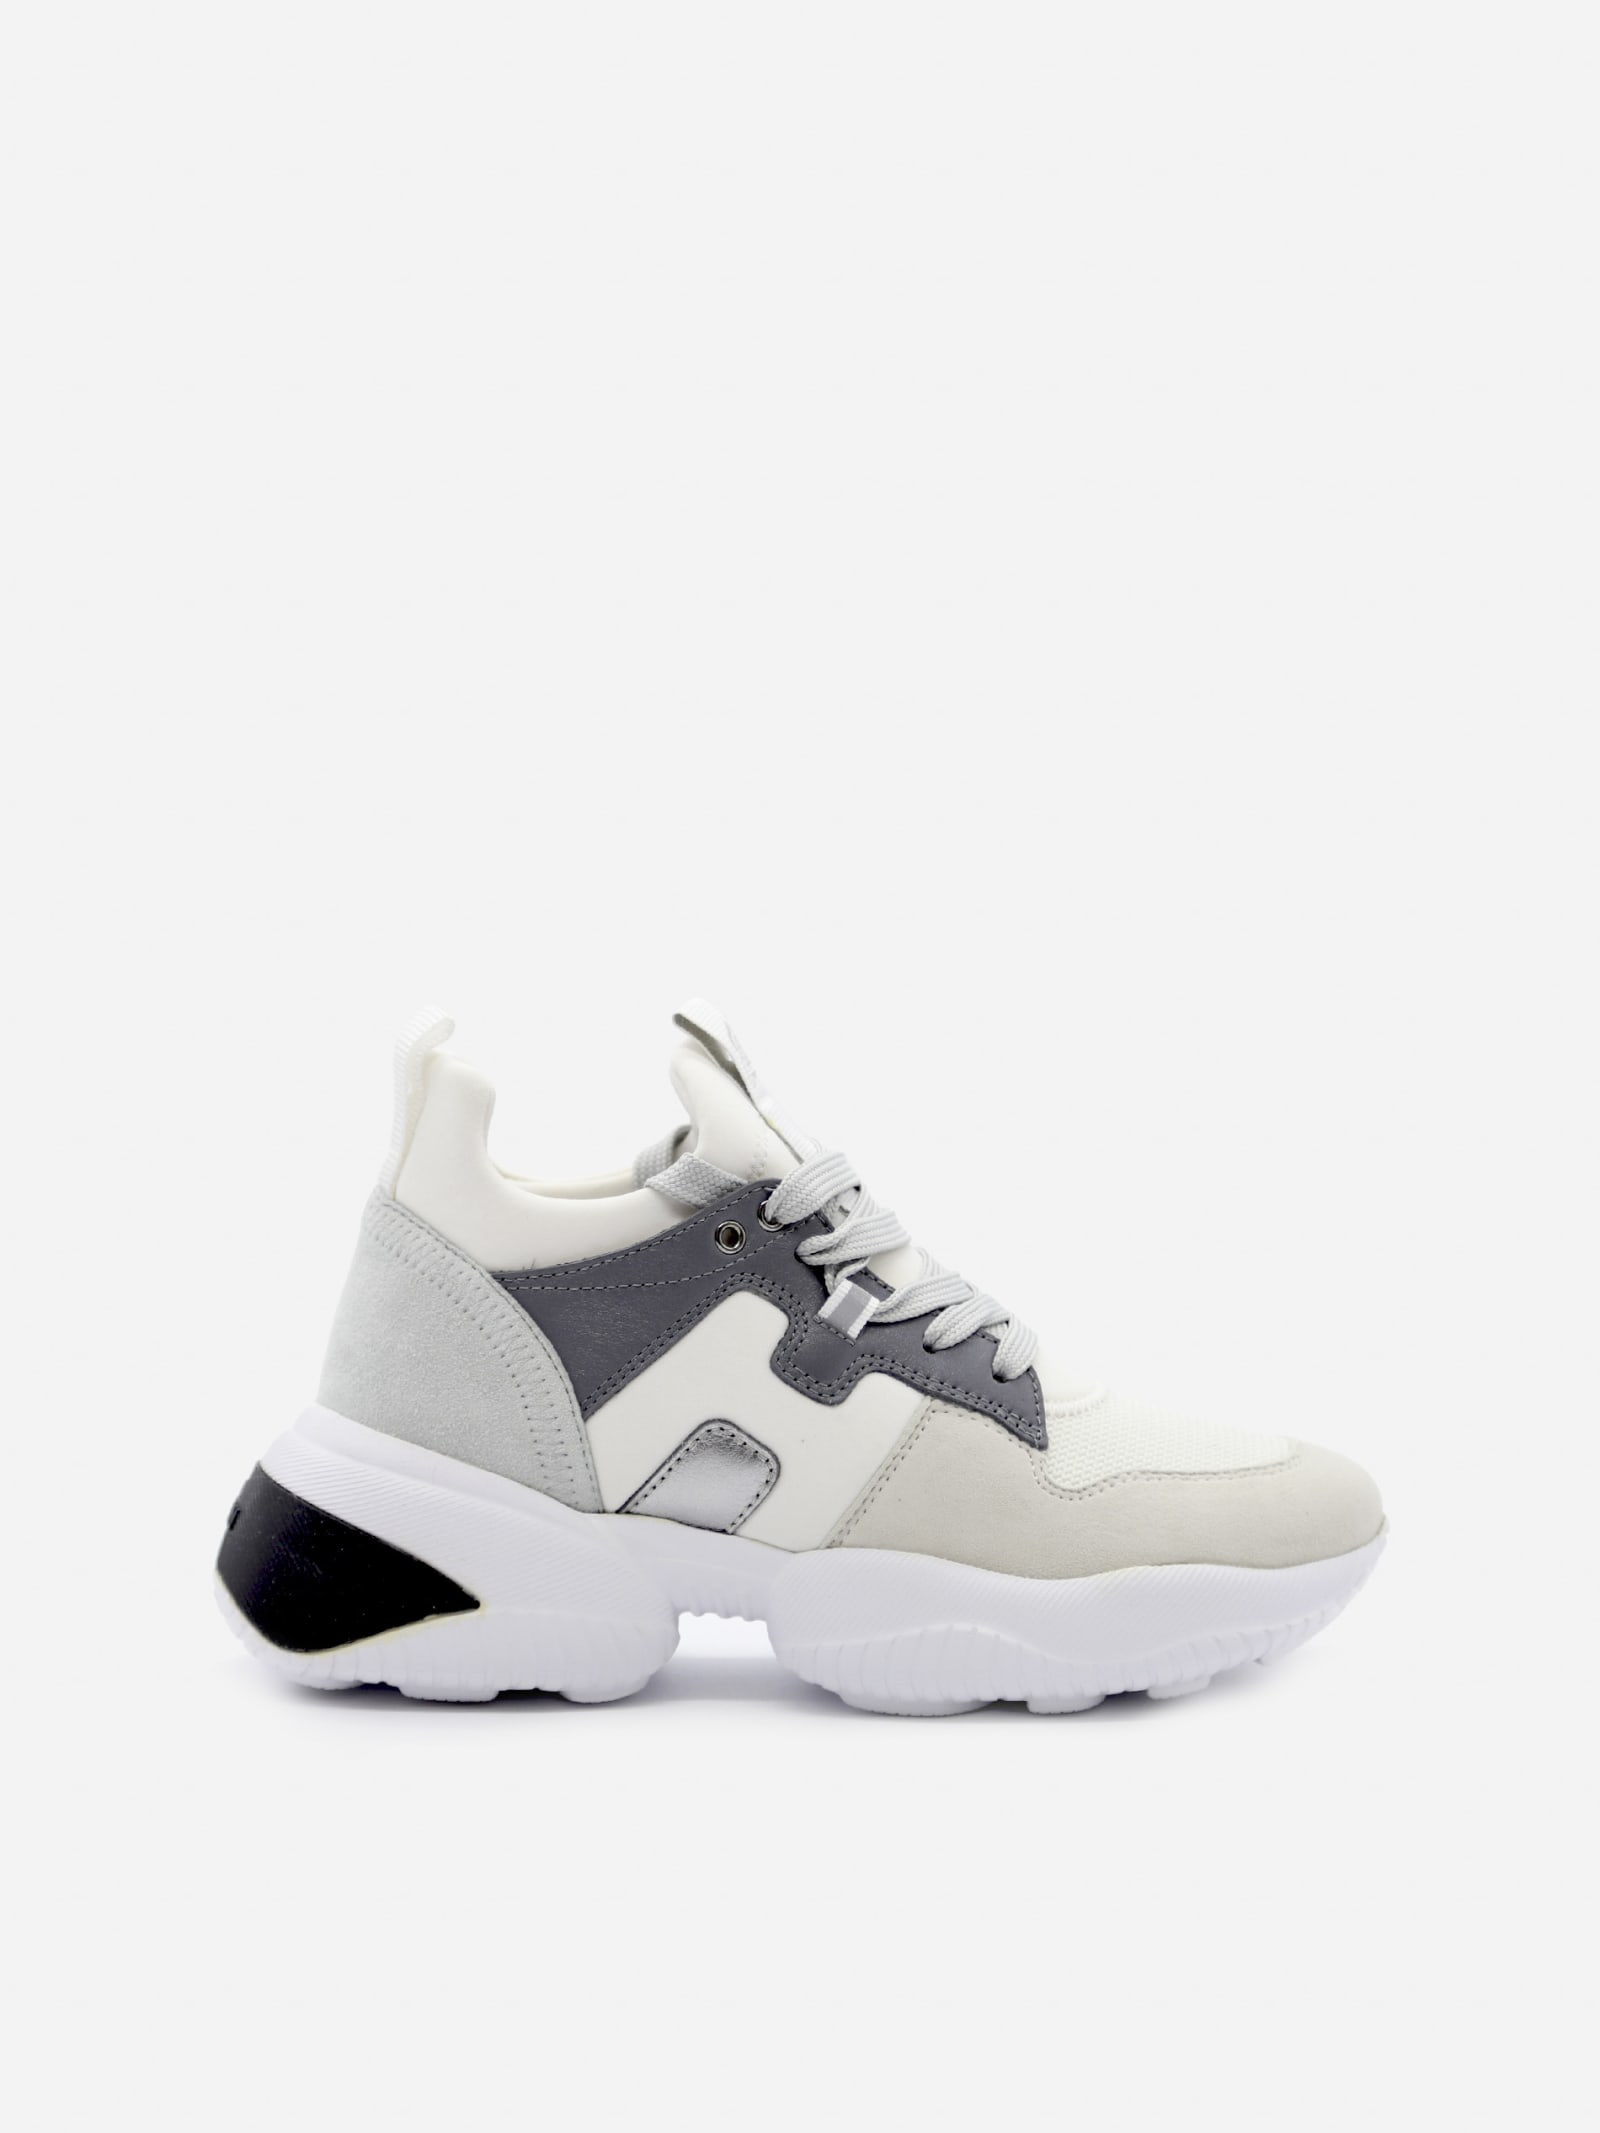 Hogan Interaction Sneakers In Leather And Suede   italist